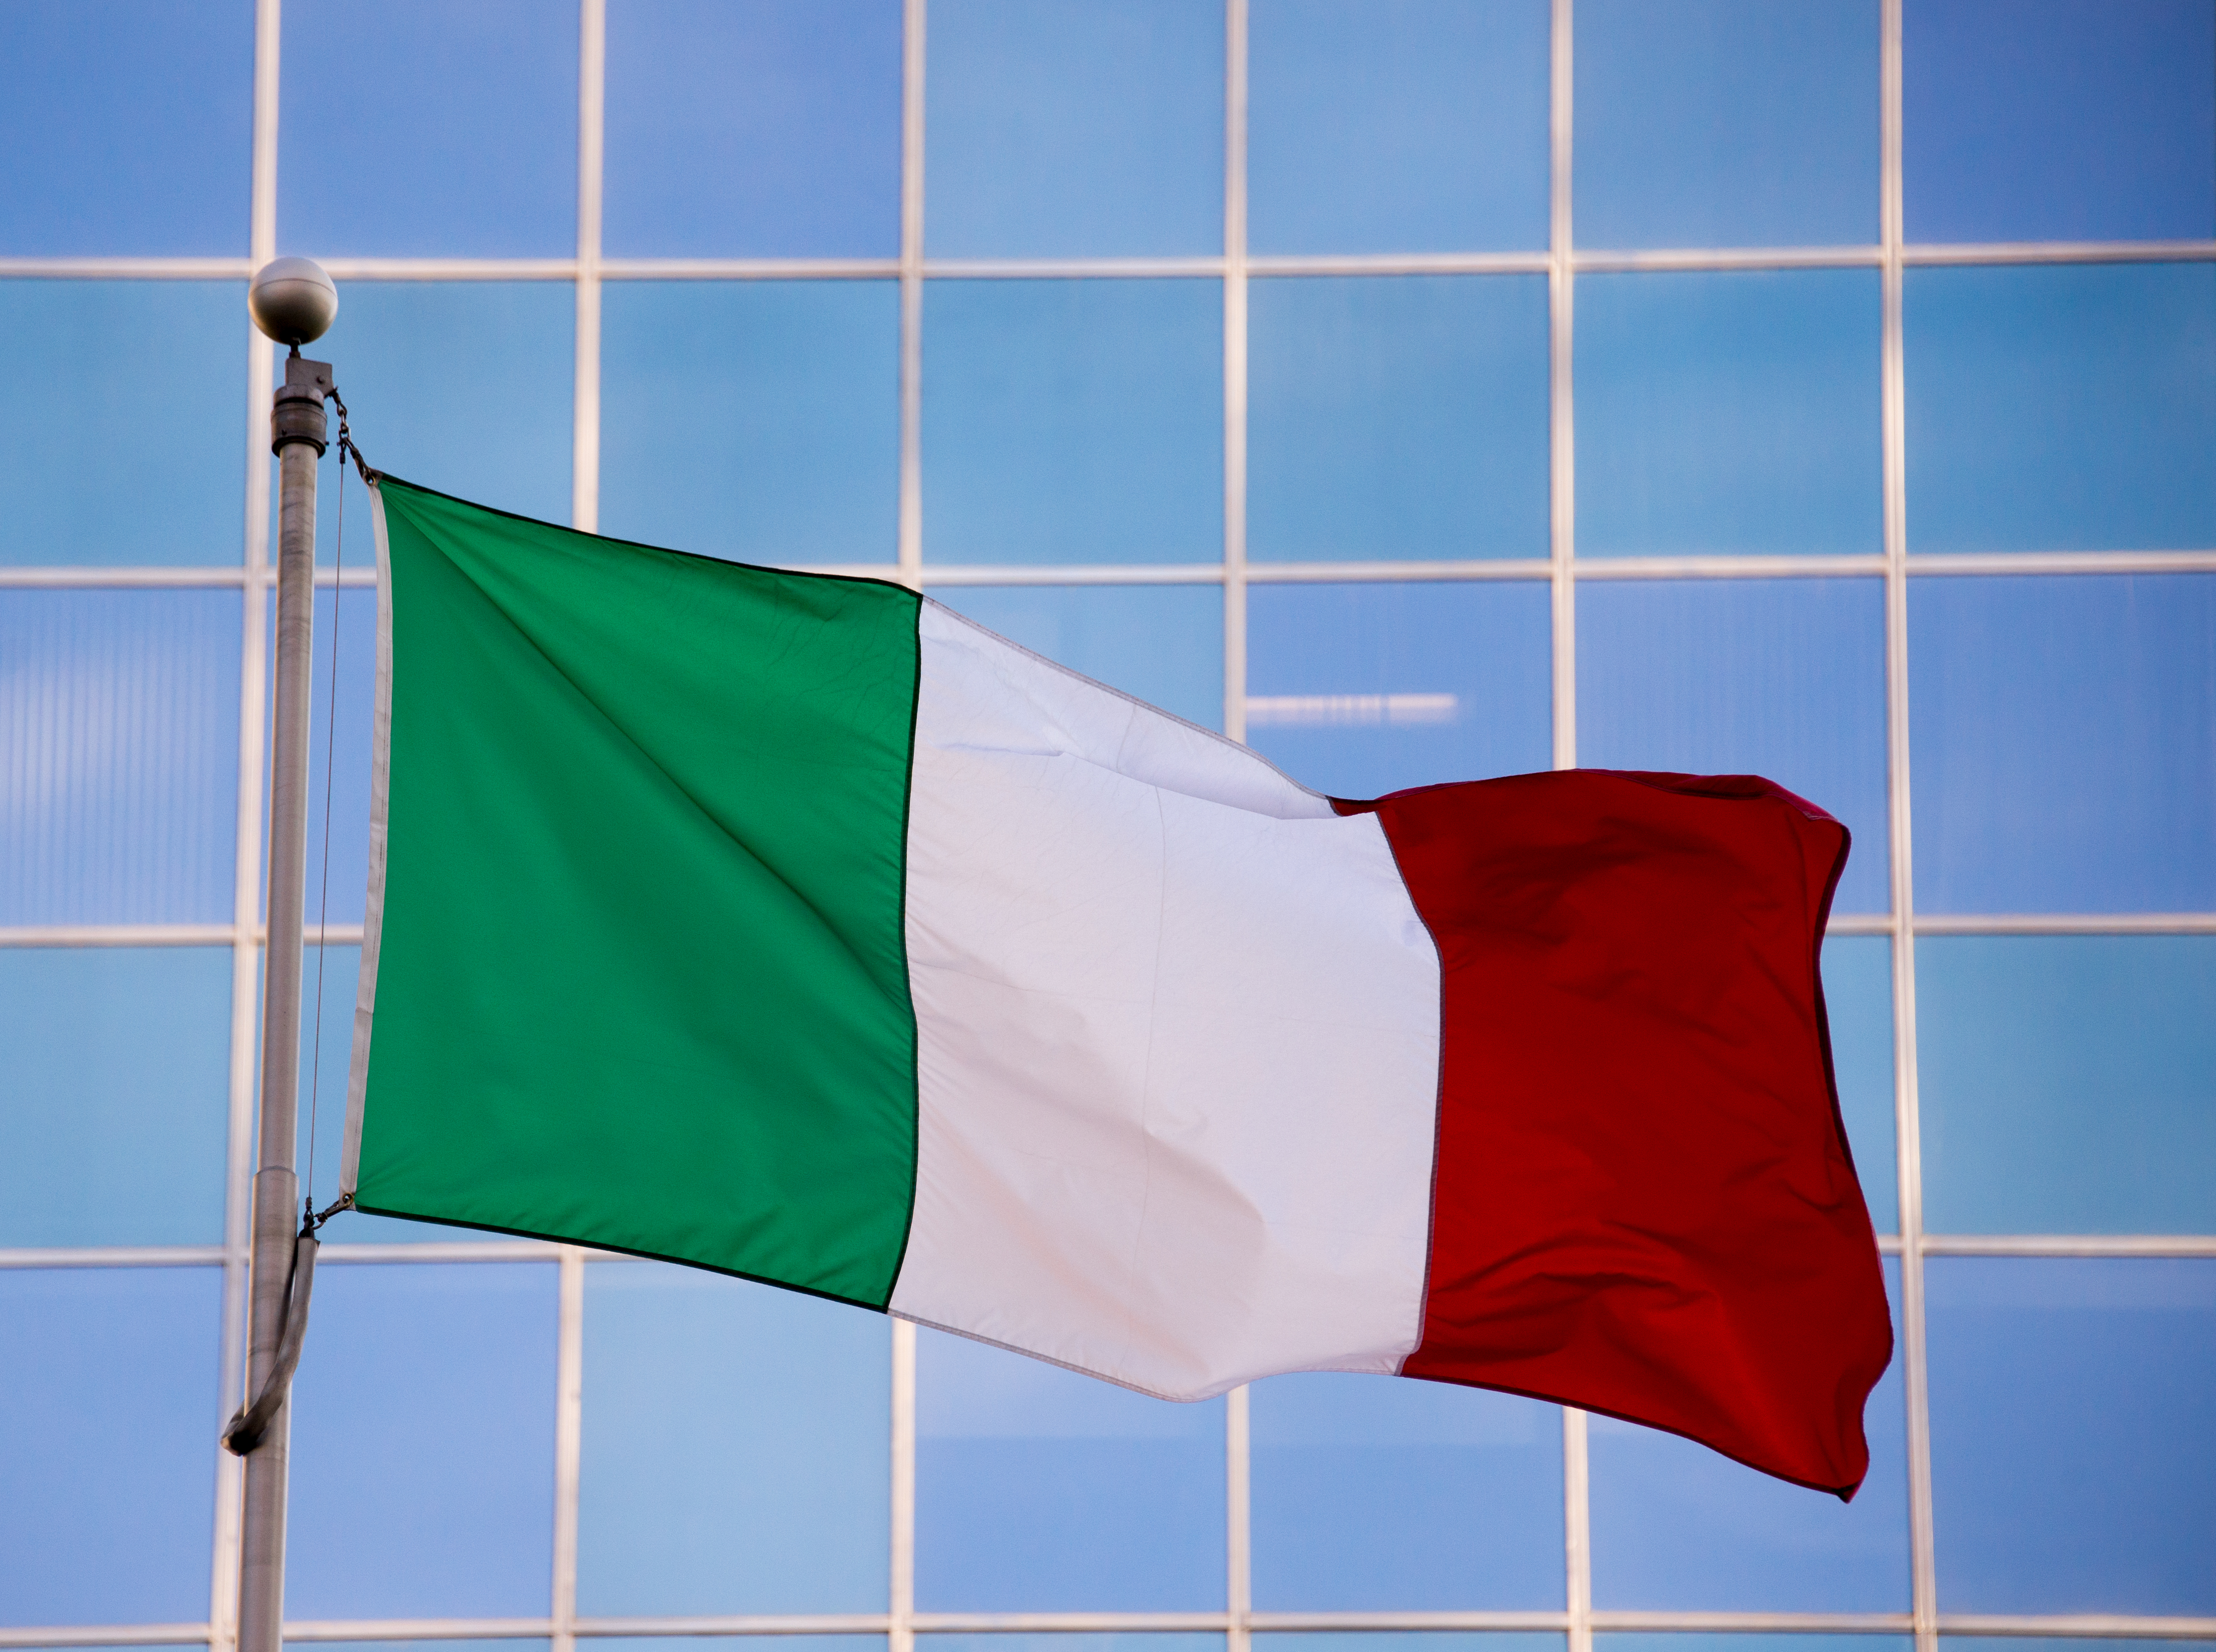 National flag of Italy.